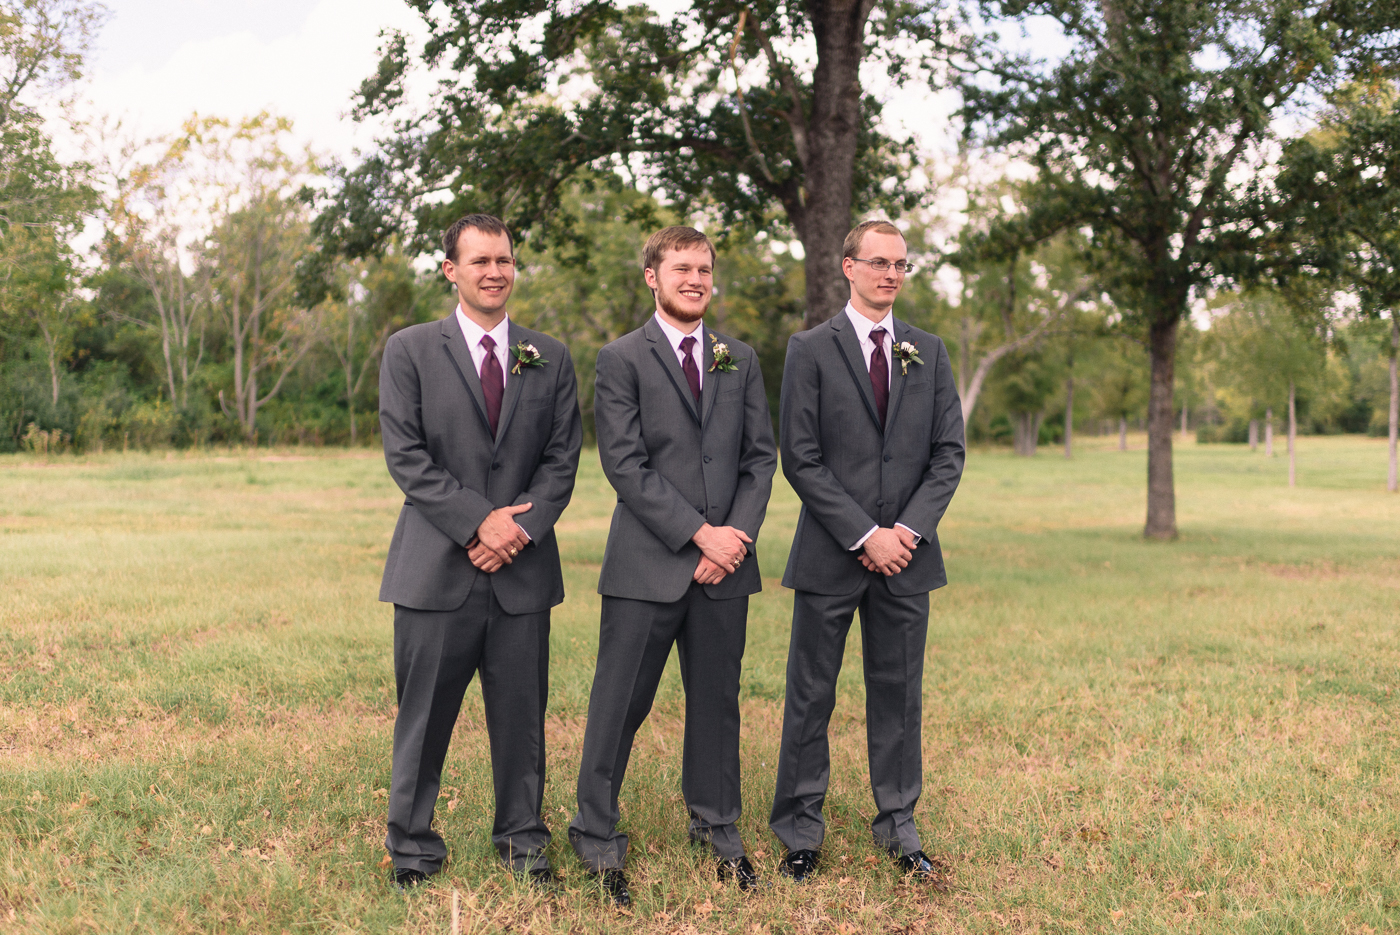 Groom and groomsmen portrait cousins boutonniere suit maroon dapper angled shot